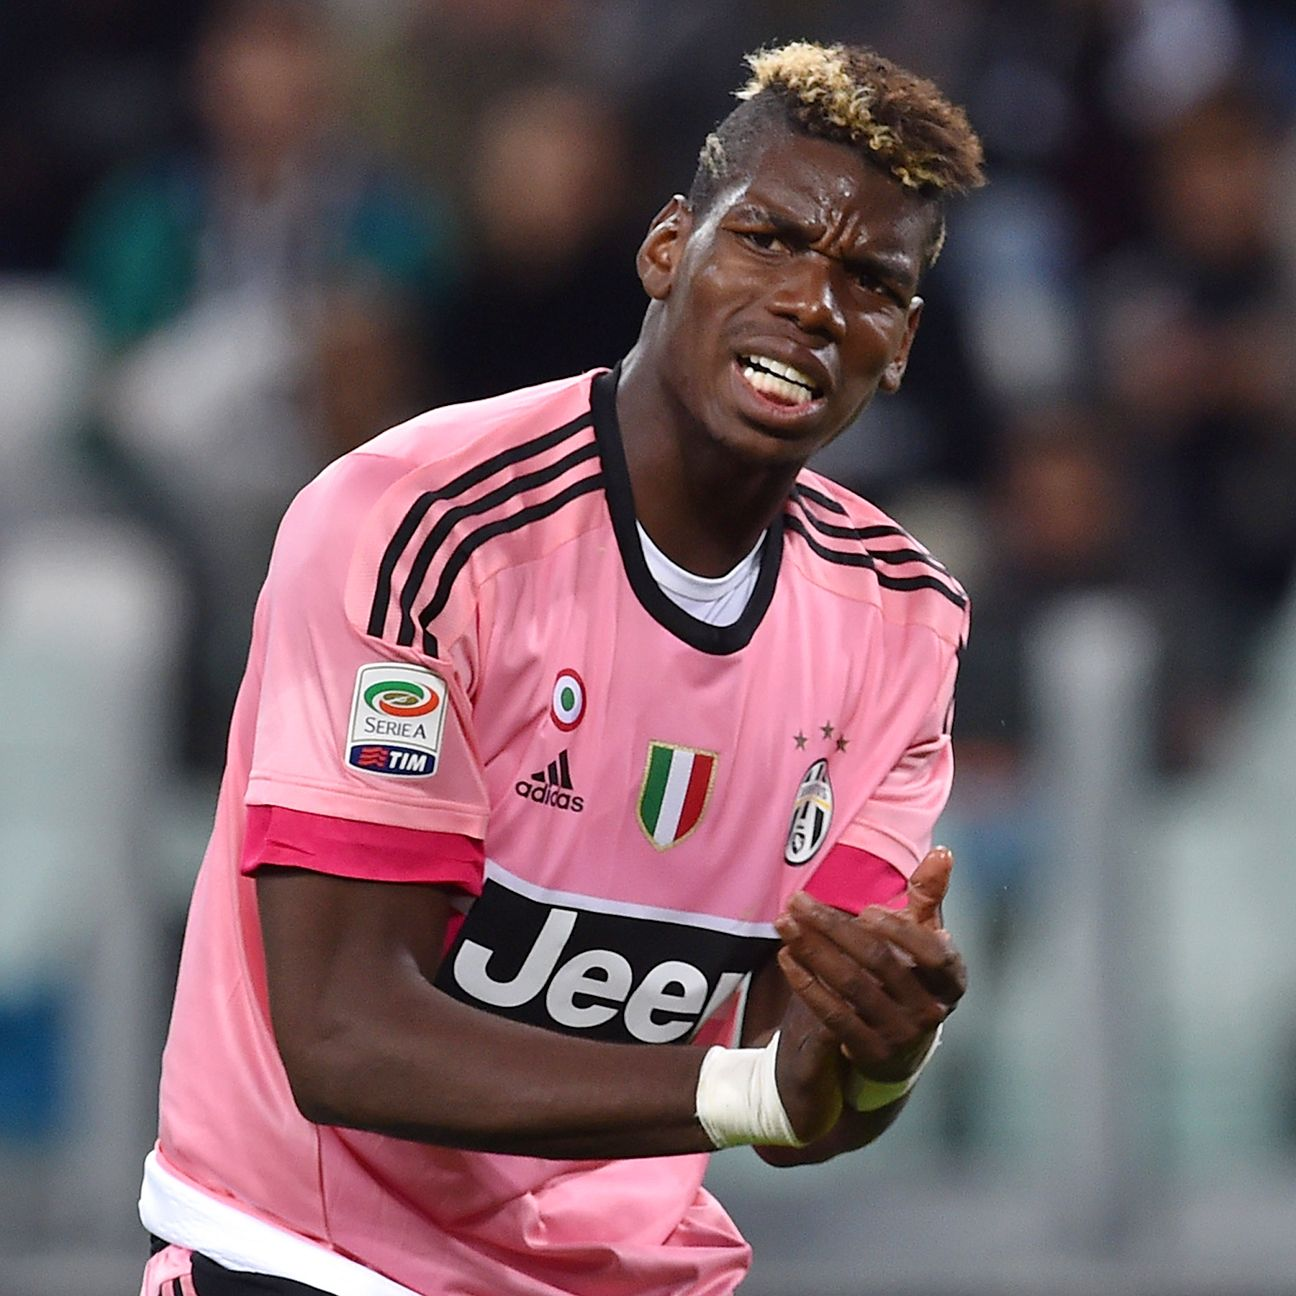 Paul Pogba and Juventus have failed to score in their last two matches.